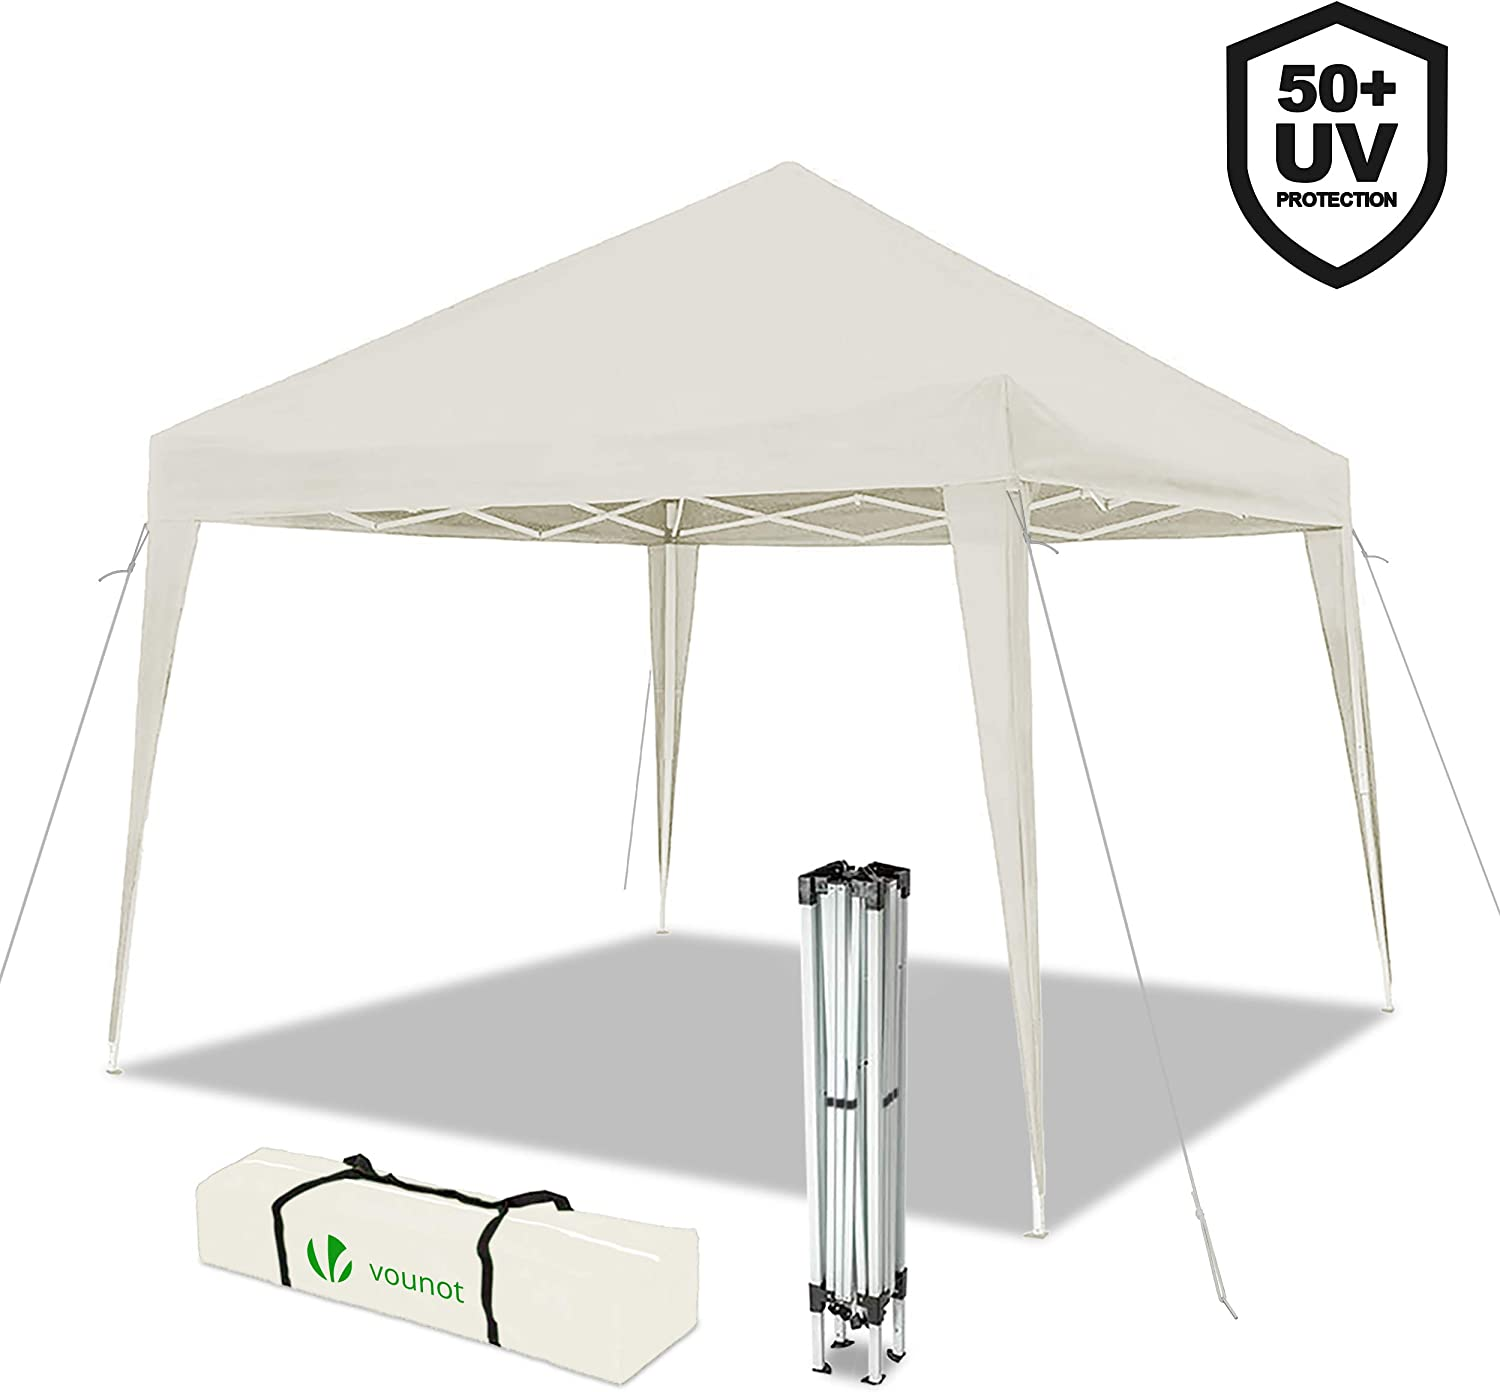 VOUNOT Gazebo Plegable Cenador 3x3 m Pabellon de Jardin, Impermeable y Pop Up, Blanco: Amazon.es: Jardín